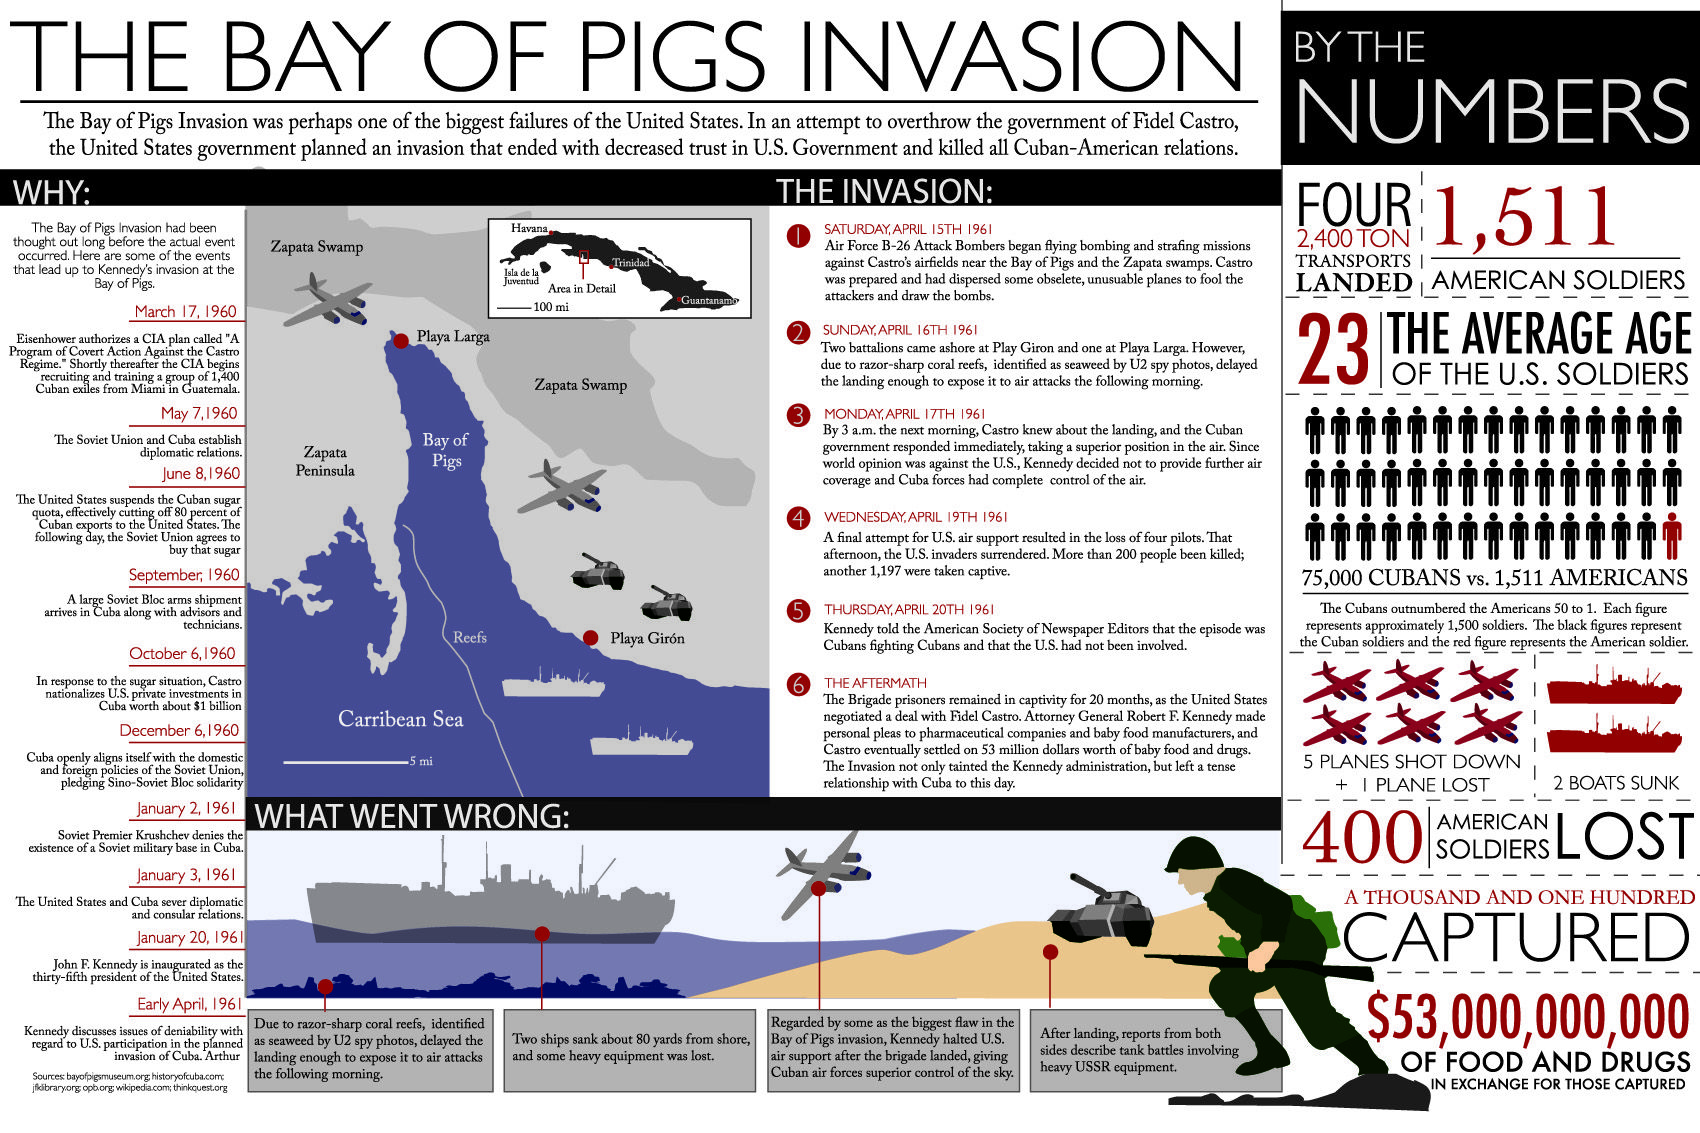 an introduction to the history of the bay of pigs invasion in the united states The bay of pigs invasion (spanish: invasión de playa girón or invasión de bahía de cochinos or batalla de girón) was a failed military invasion of cuba undertaken by the central intelligence agency (cia)-sponsored paramilitary group brigade 2506 on 17 april 1961.